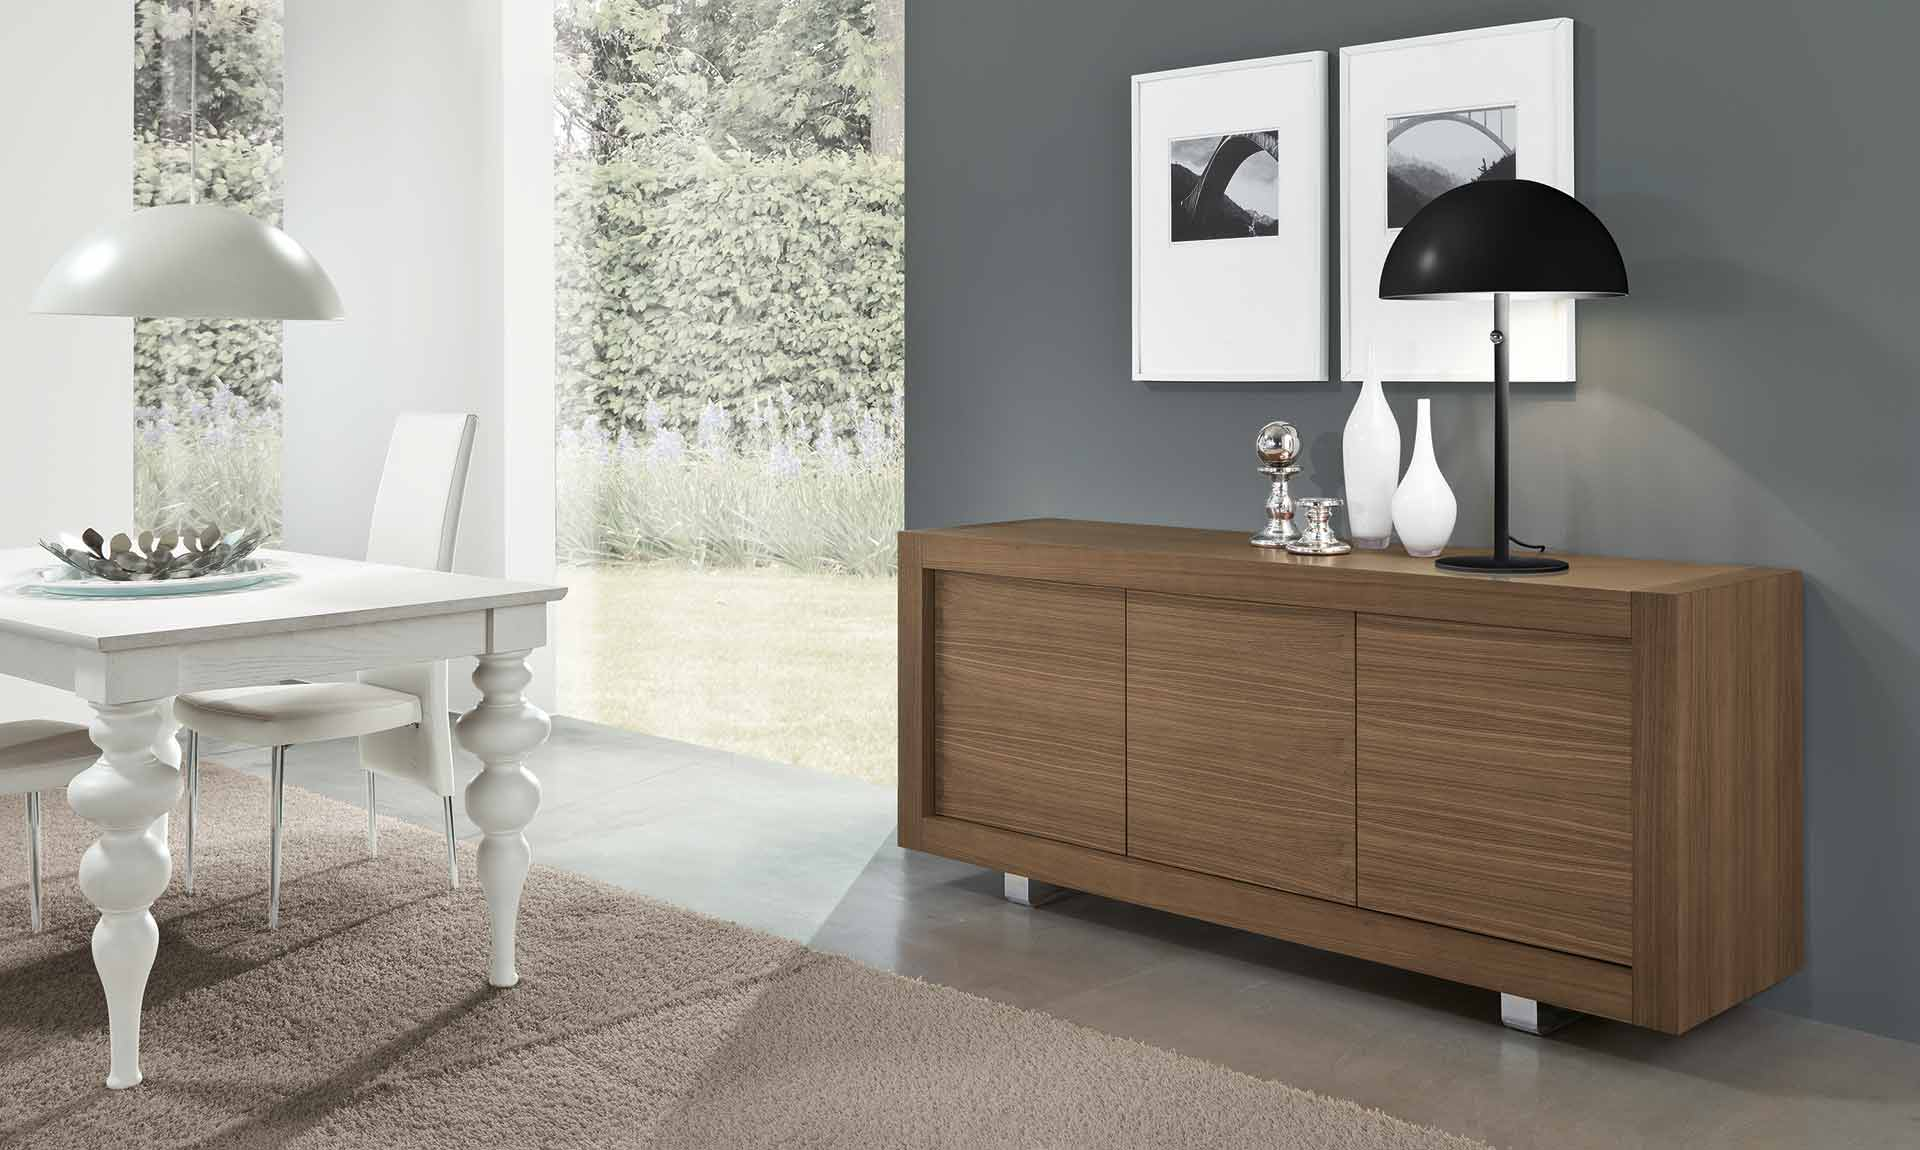 sideboard-picasso-p1-walnut-doors-full-by-riflessi